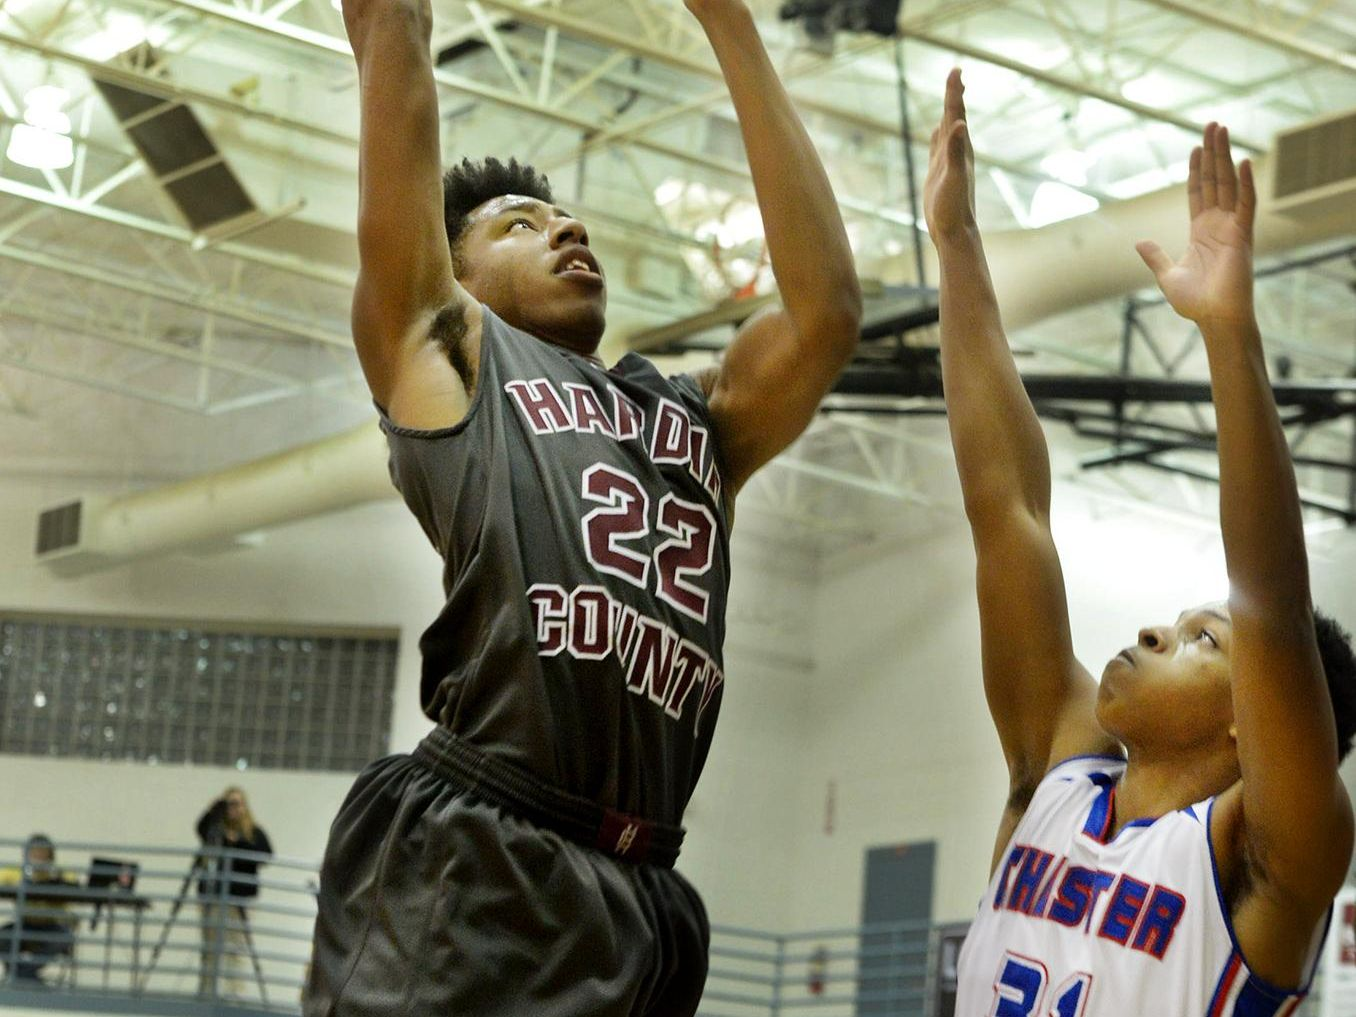 Hardin County's D'Angelo Anderson goes up for a shot over Chester County's Brennan Phelps during their game Thursday evening.